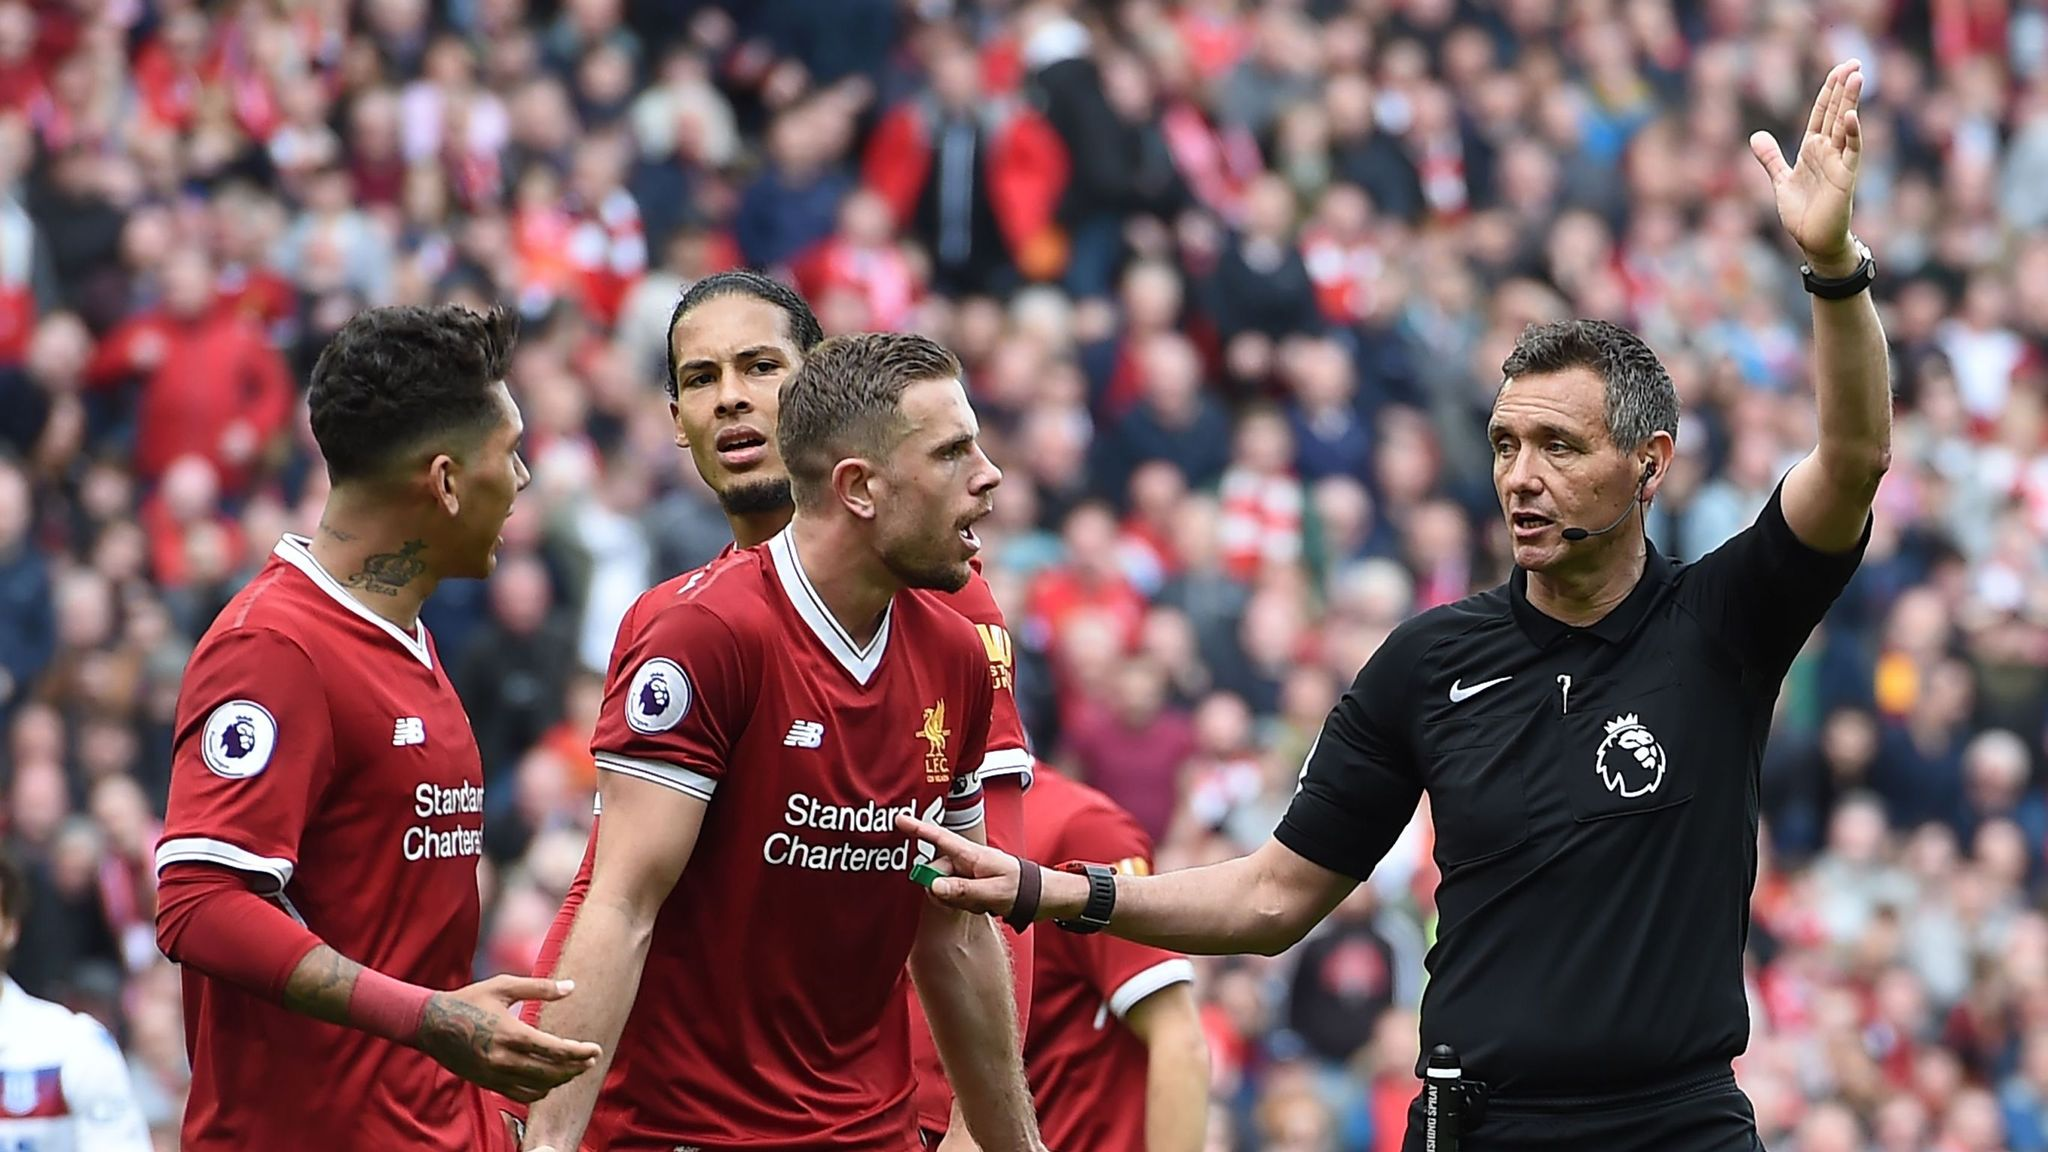 Liverpool Unluckiest Team In Premier League Last Season